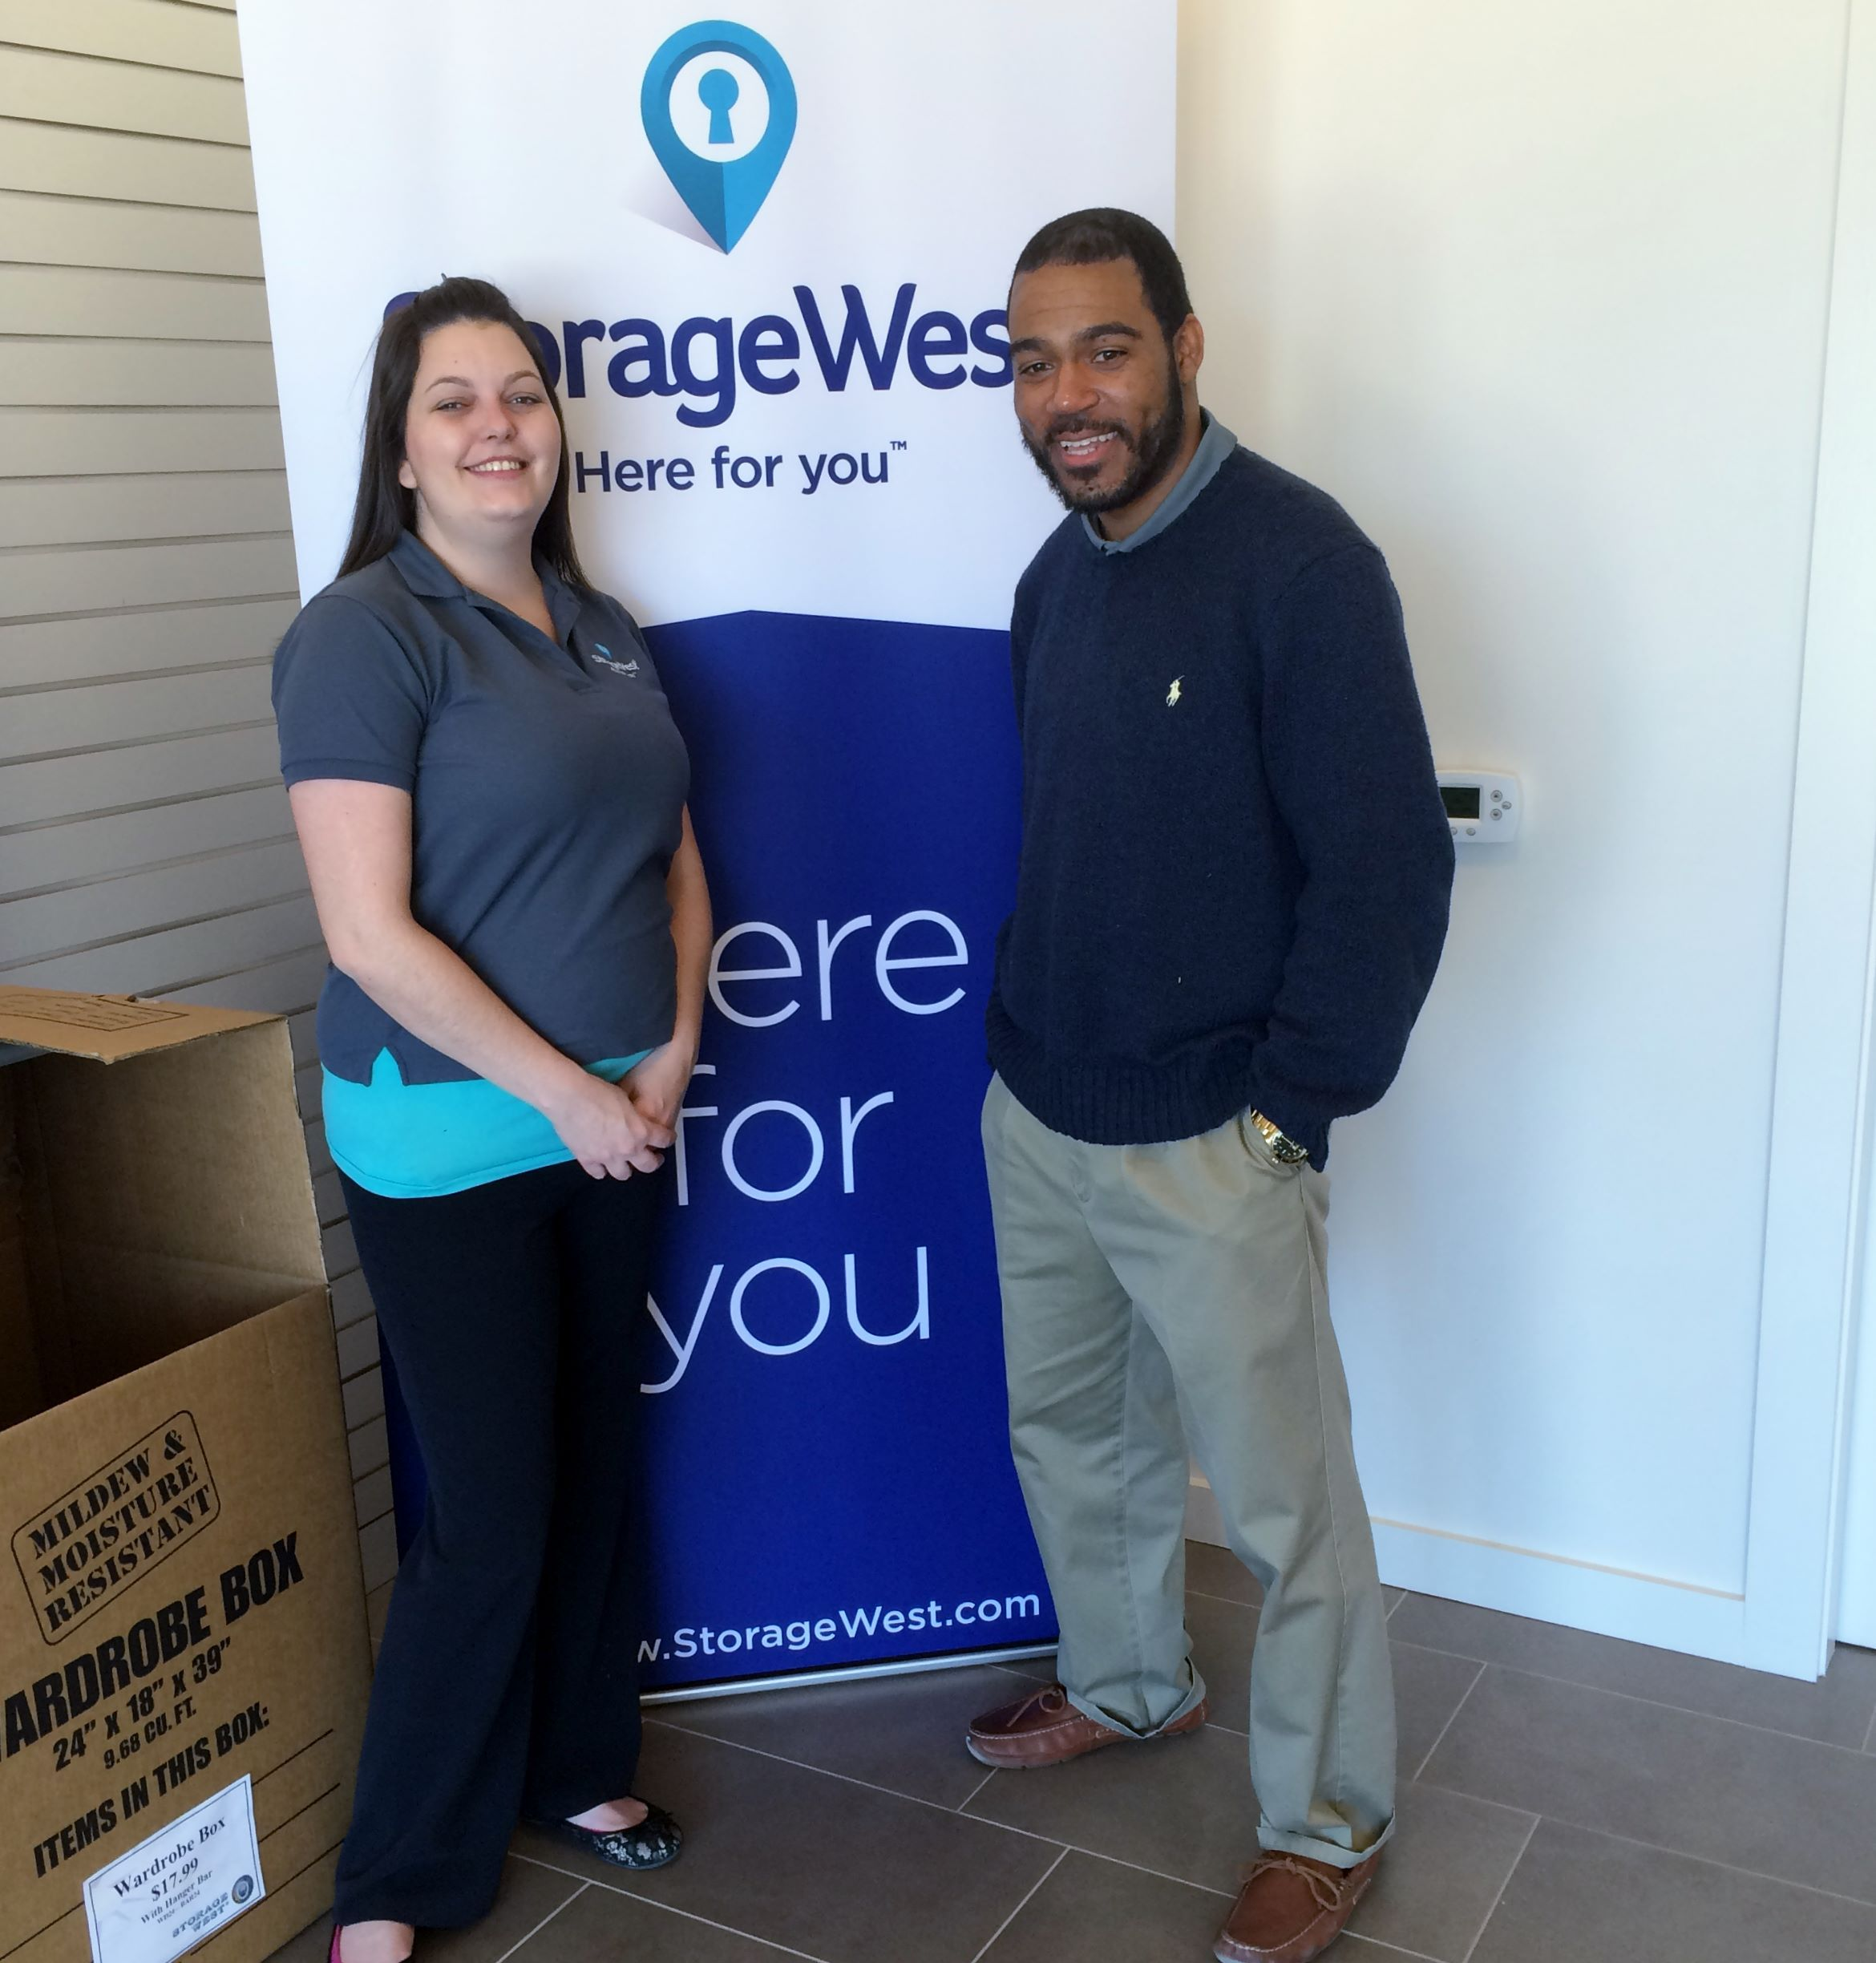 Hereu0027s Autumn Visiting AJ At Storage West The Heights All The Way